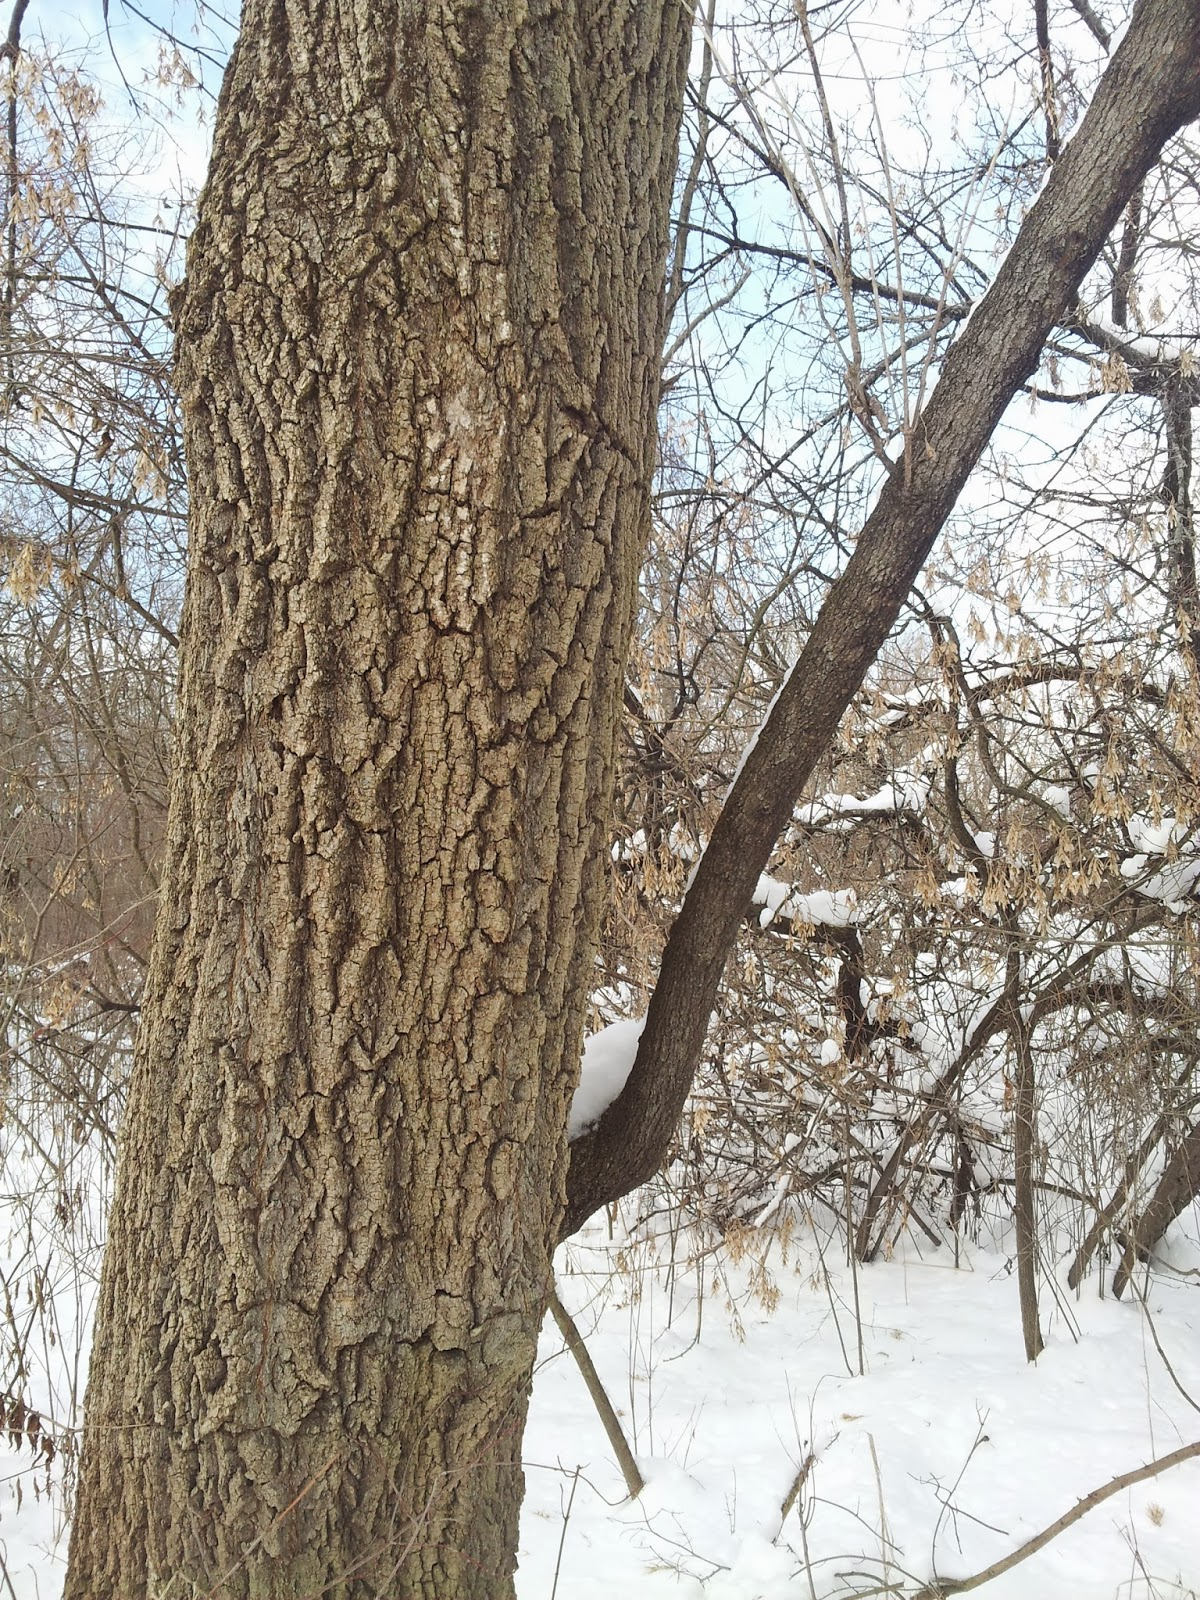 Clifton Park Open Spaces Winter Tree Identification Quiz